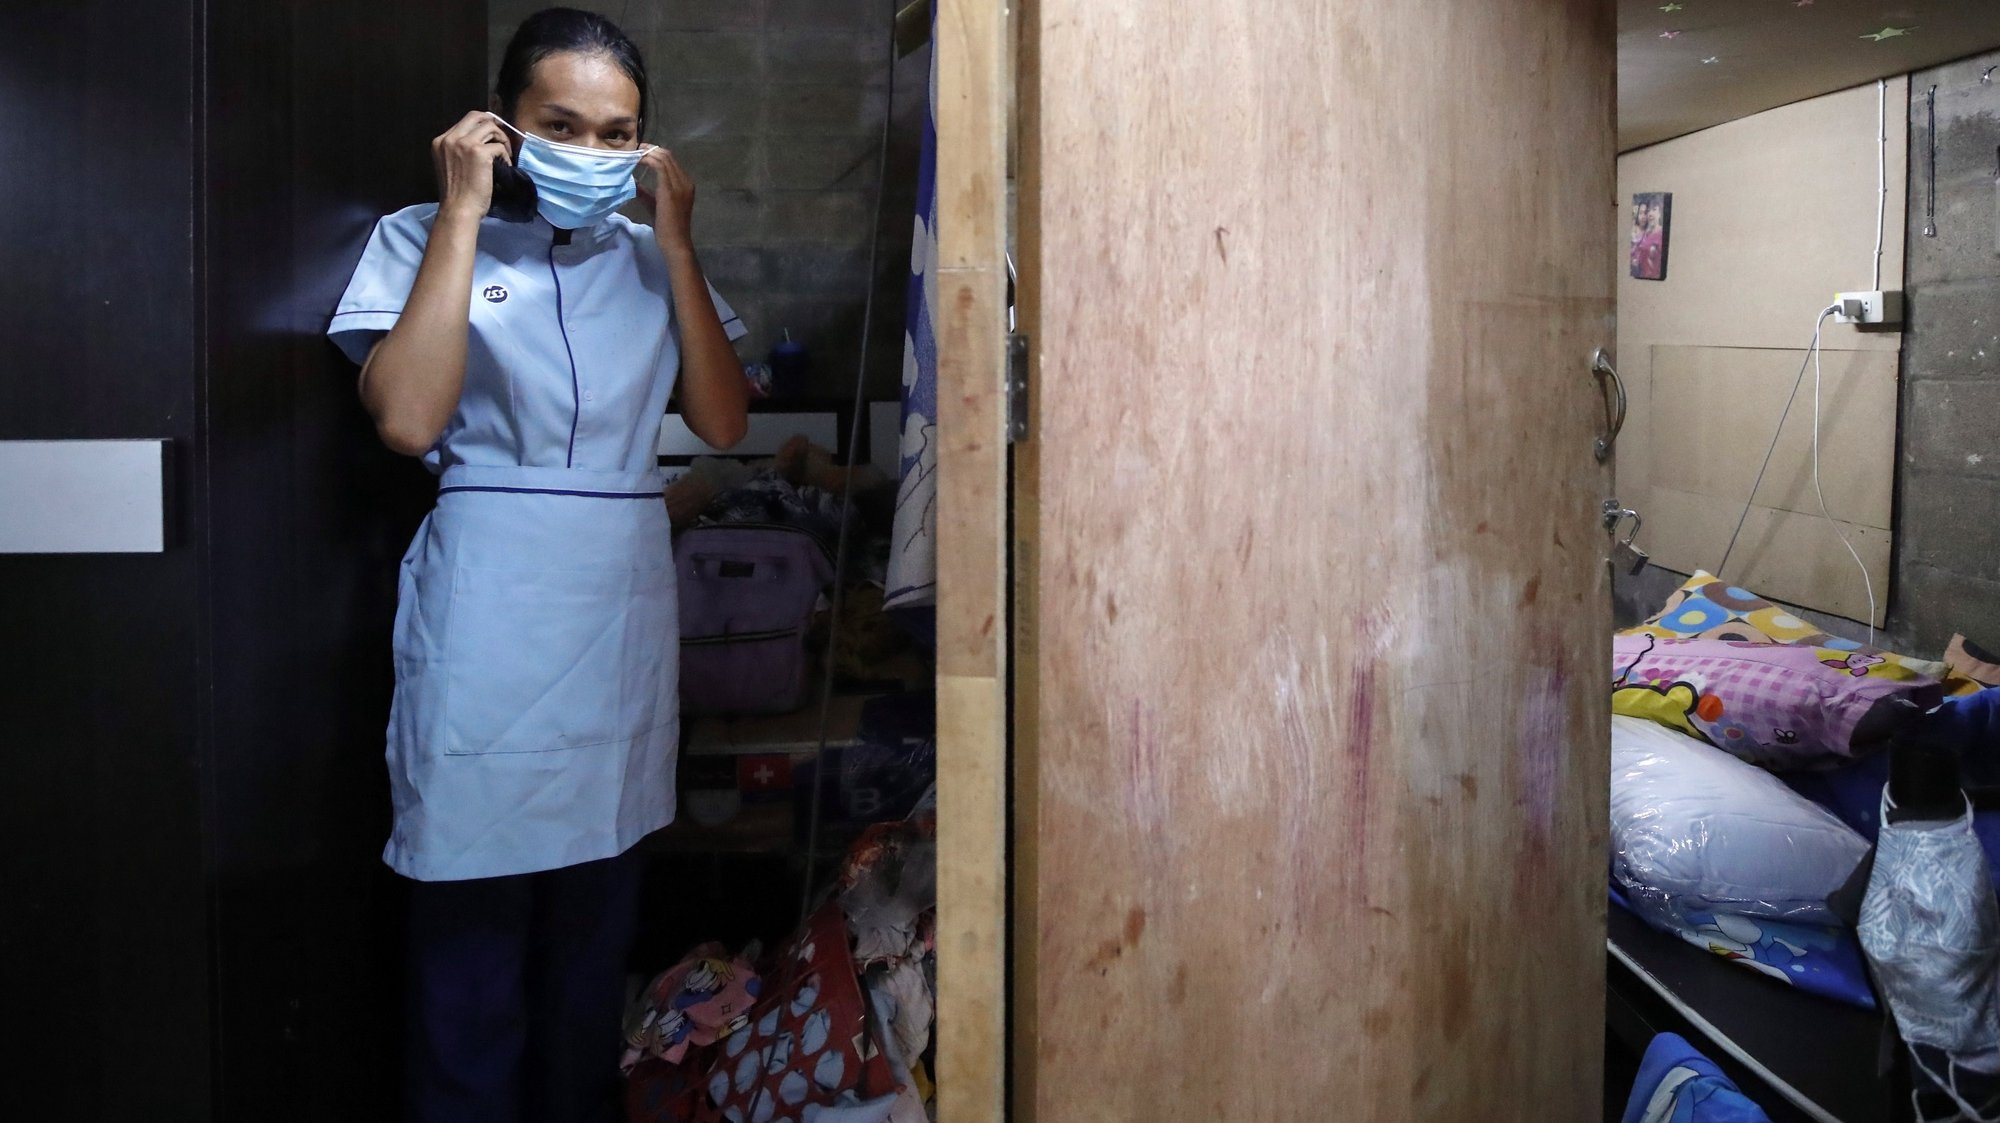 epa08495230 Wannisa Manatham puts on her protective mask at her home before leaving for work in Bangkok, Thailand, 23 May 2020 (issued 19 June 2020). In a neighborhood affected by crime and drug addiction, Wannisa faces economic drowning by Covid-19. Along with her uncle, Wannisa, who works as a cleaner in a hospital earning about 12,000 baht a month (about 376 dollars), is the only adult out of four in her family who have not lost their job to the pandemic. (about 376 US dollars). The pandemic has killed more men but it is women who are the most vulnerable to its socio-economic effects. Women often have to care for children, elderly and sick during lockdown. Many have not only lost their jobs but have been exposed to domestic violence as well as a widening in the gap of systematic inequality, especially in the poorest countries. UN Women warns in a report on the effects of Covid-19 that women do an average of 4.1 hours a day unpaid work such as housework or caring for dependents, three times as much as men. All the unpaid care carried out by women is equivalent to 2.35 percent of the global GDP or 1.35 trillion US dollars. In addition to occupying 70 percent of jobs in the health sector worldwide, women generally earn an average of 16 percent less than men, which rises to 35 percent in some countries.  EPA/DIEGO AZUBEL To go with EFE story by Gaspar Ruiz ATTENTION: This Image is part of a PHOTO SET